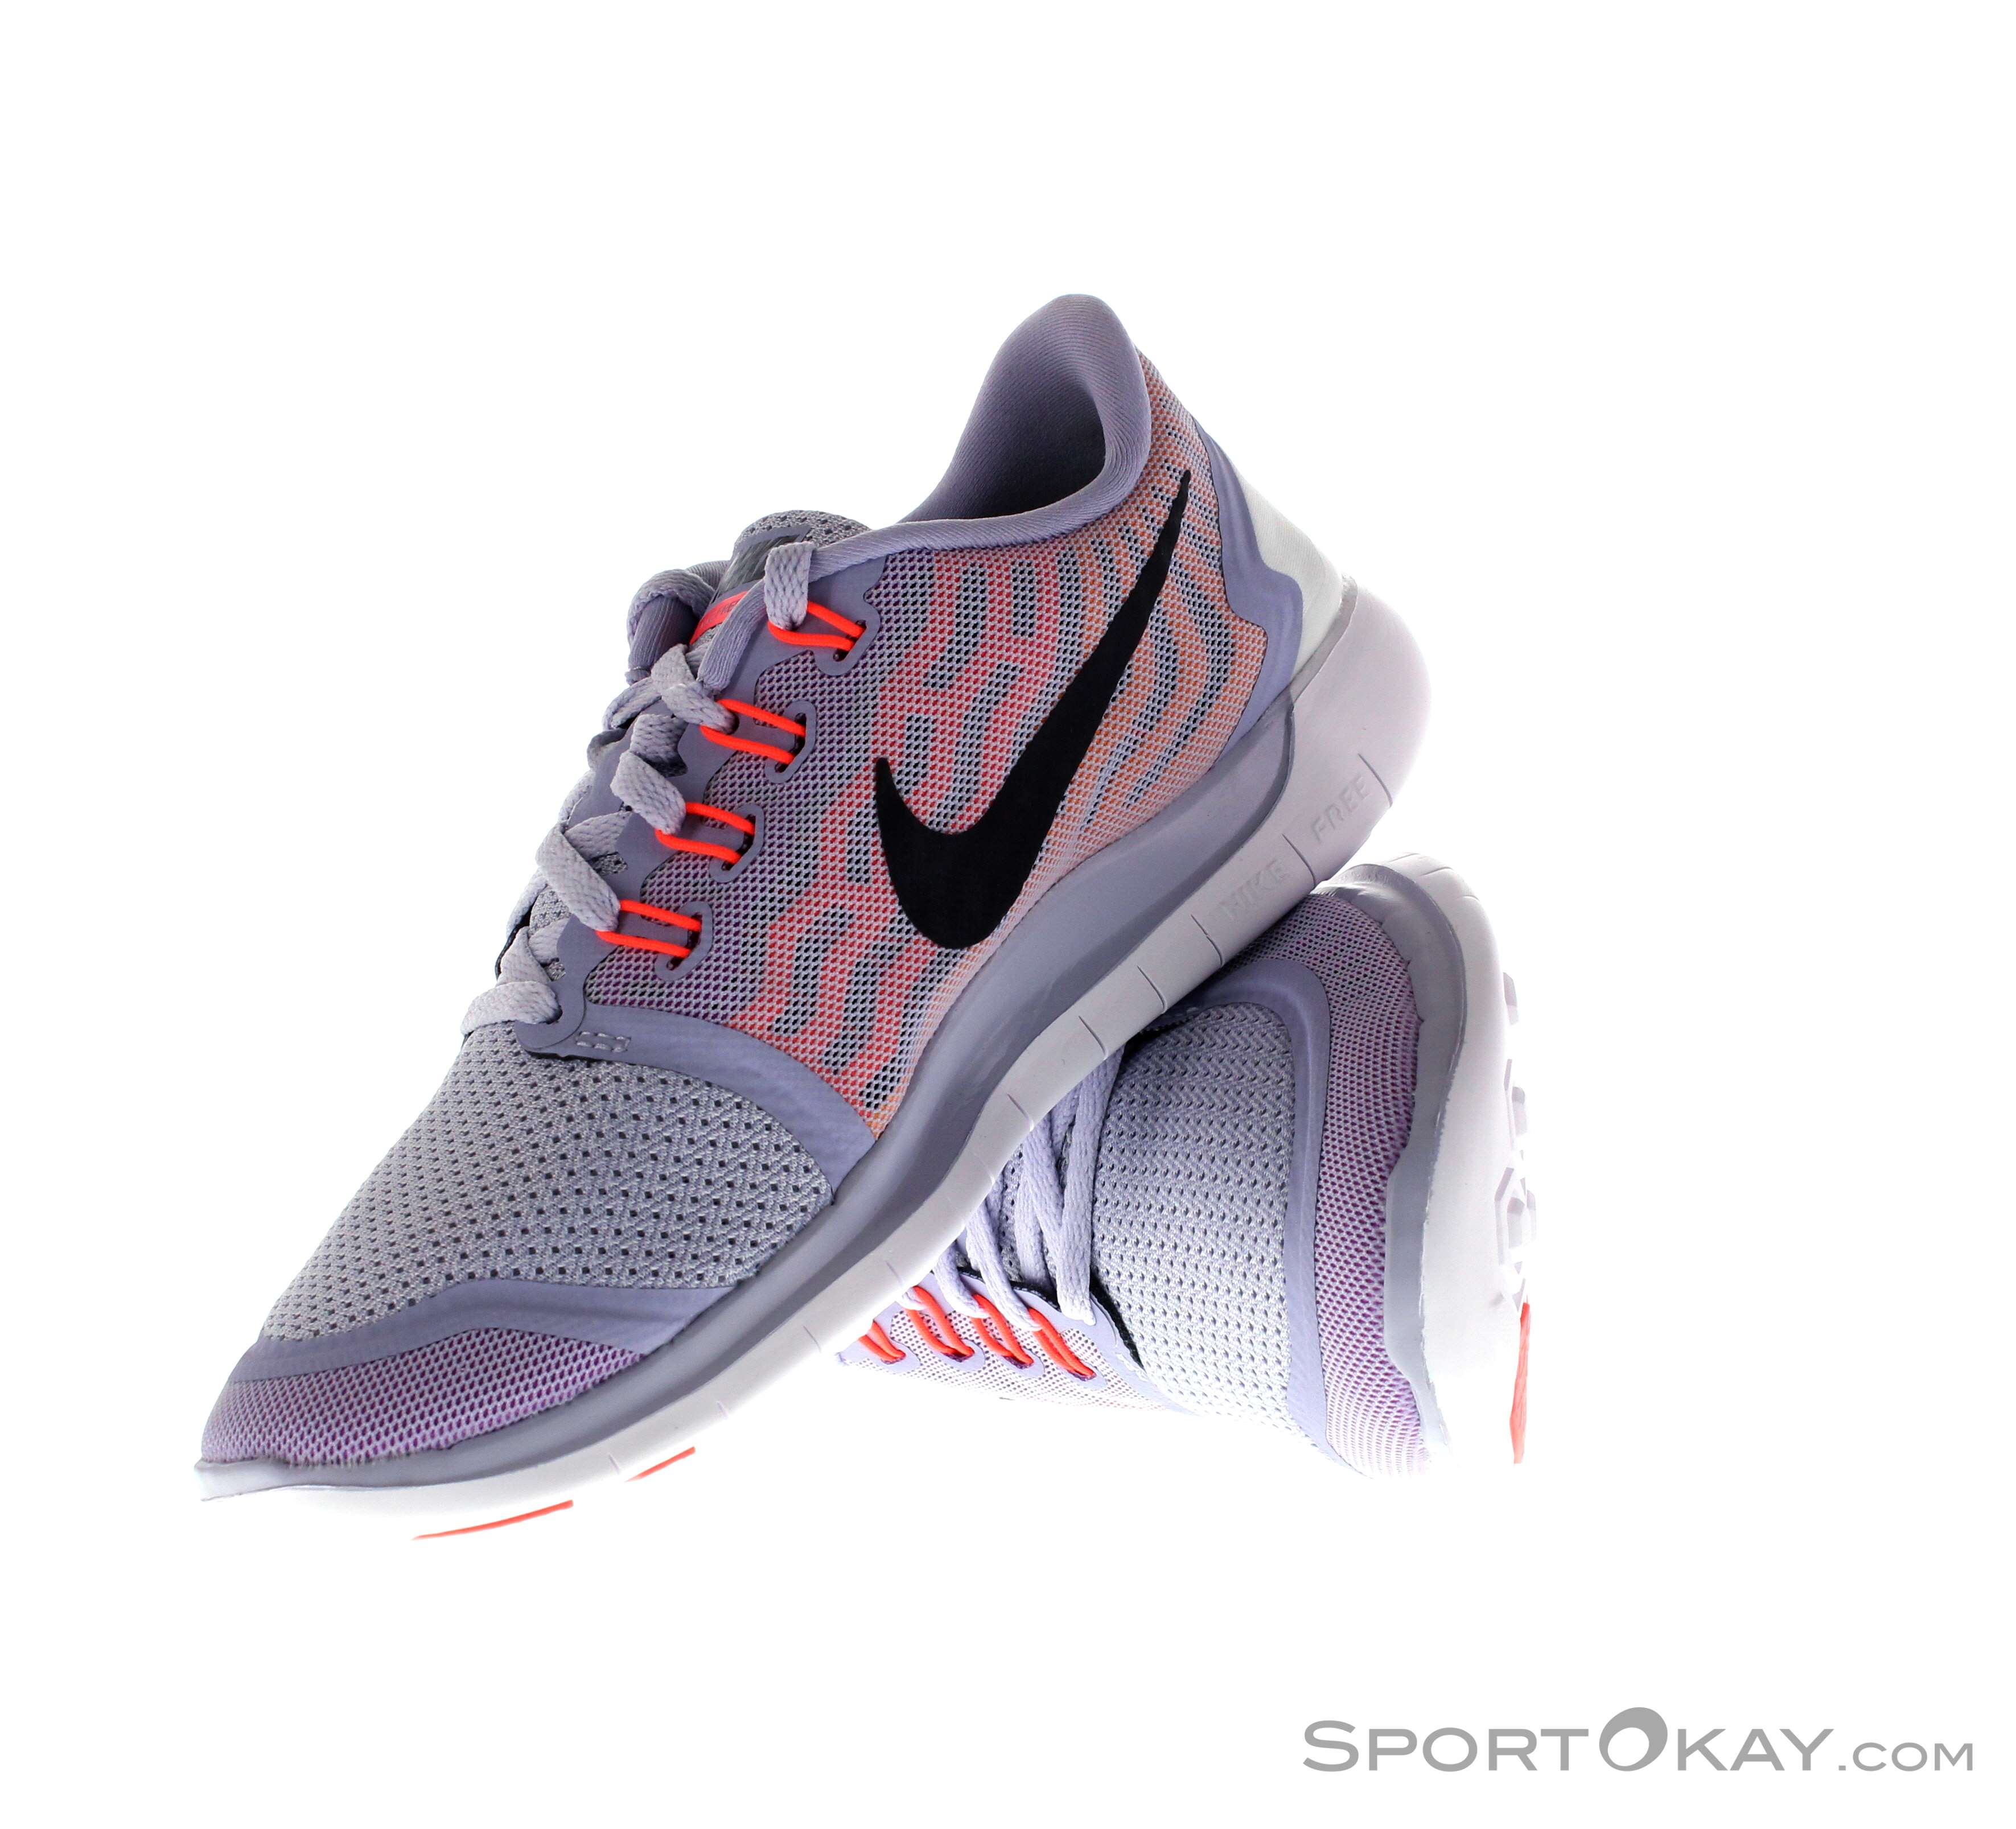 official photos c612f babf4 Nike Free 5.0 Womens Running Shoes, Nike, White, , Female, 0026-